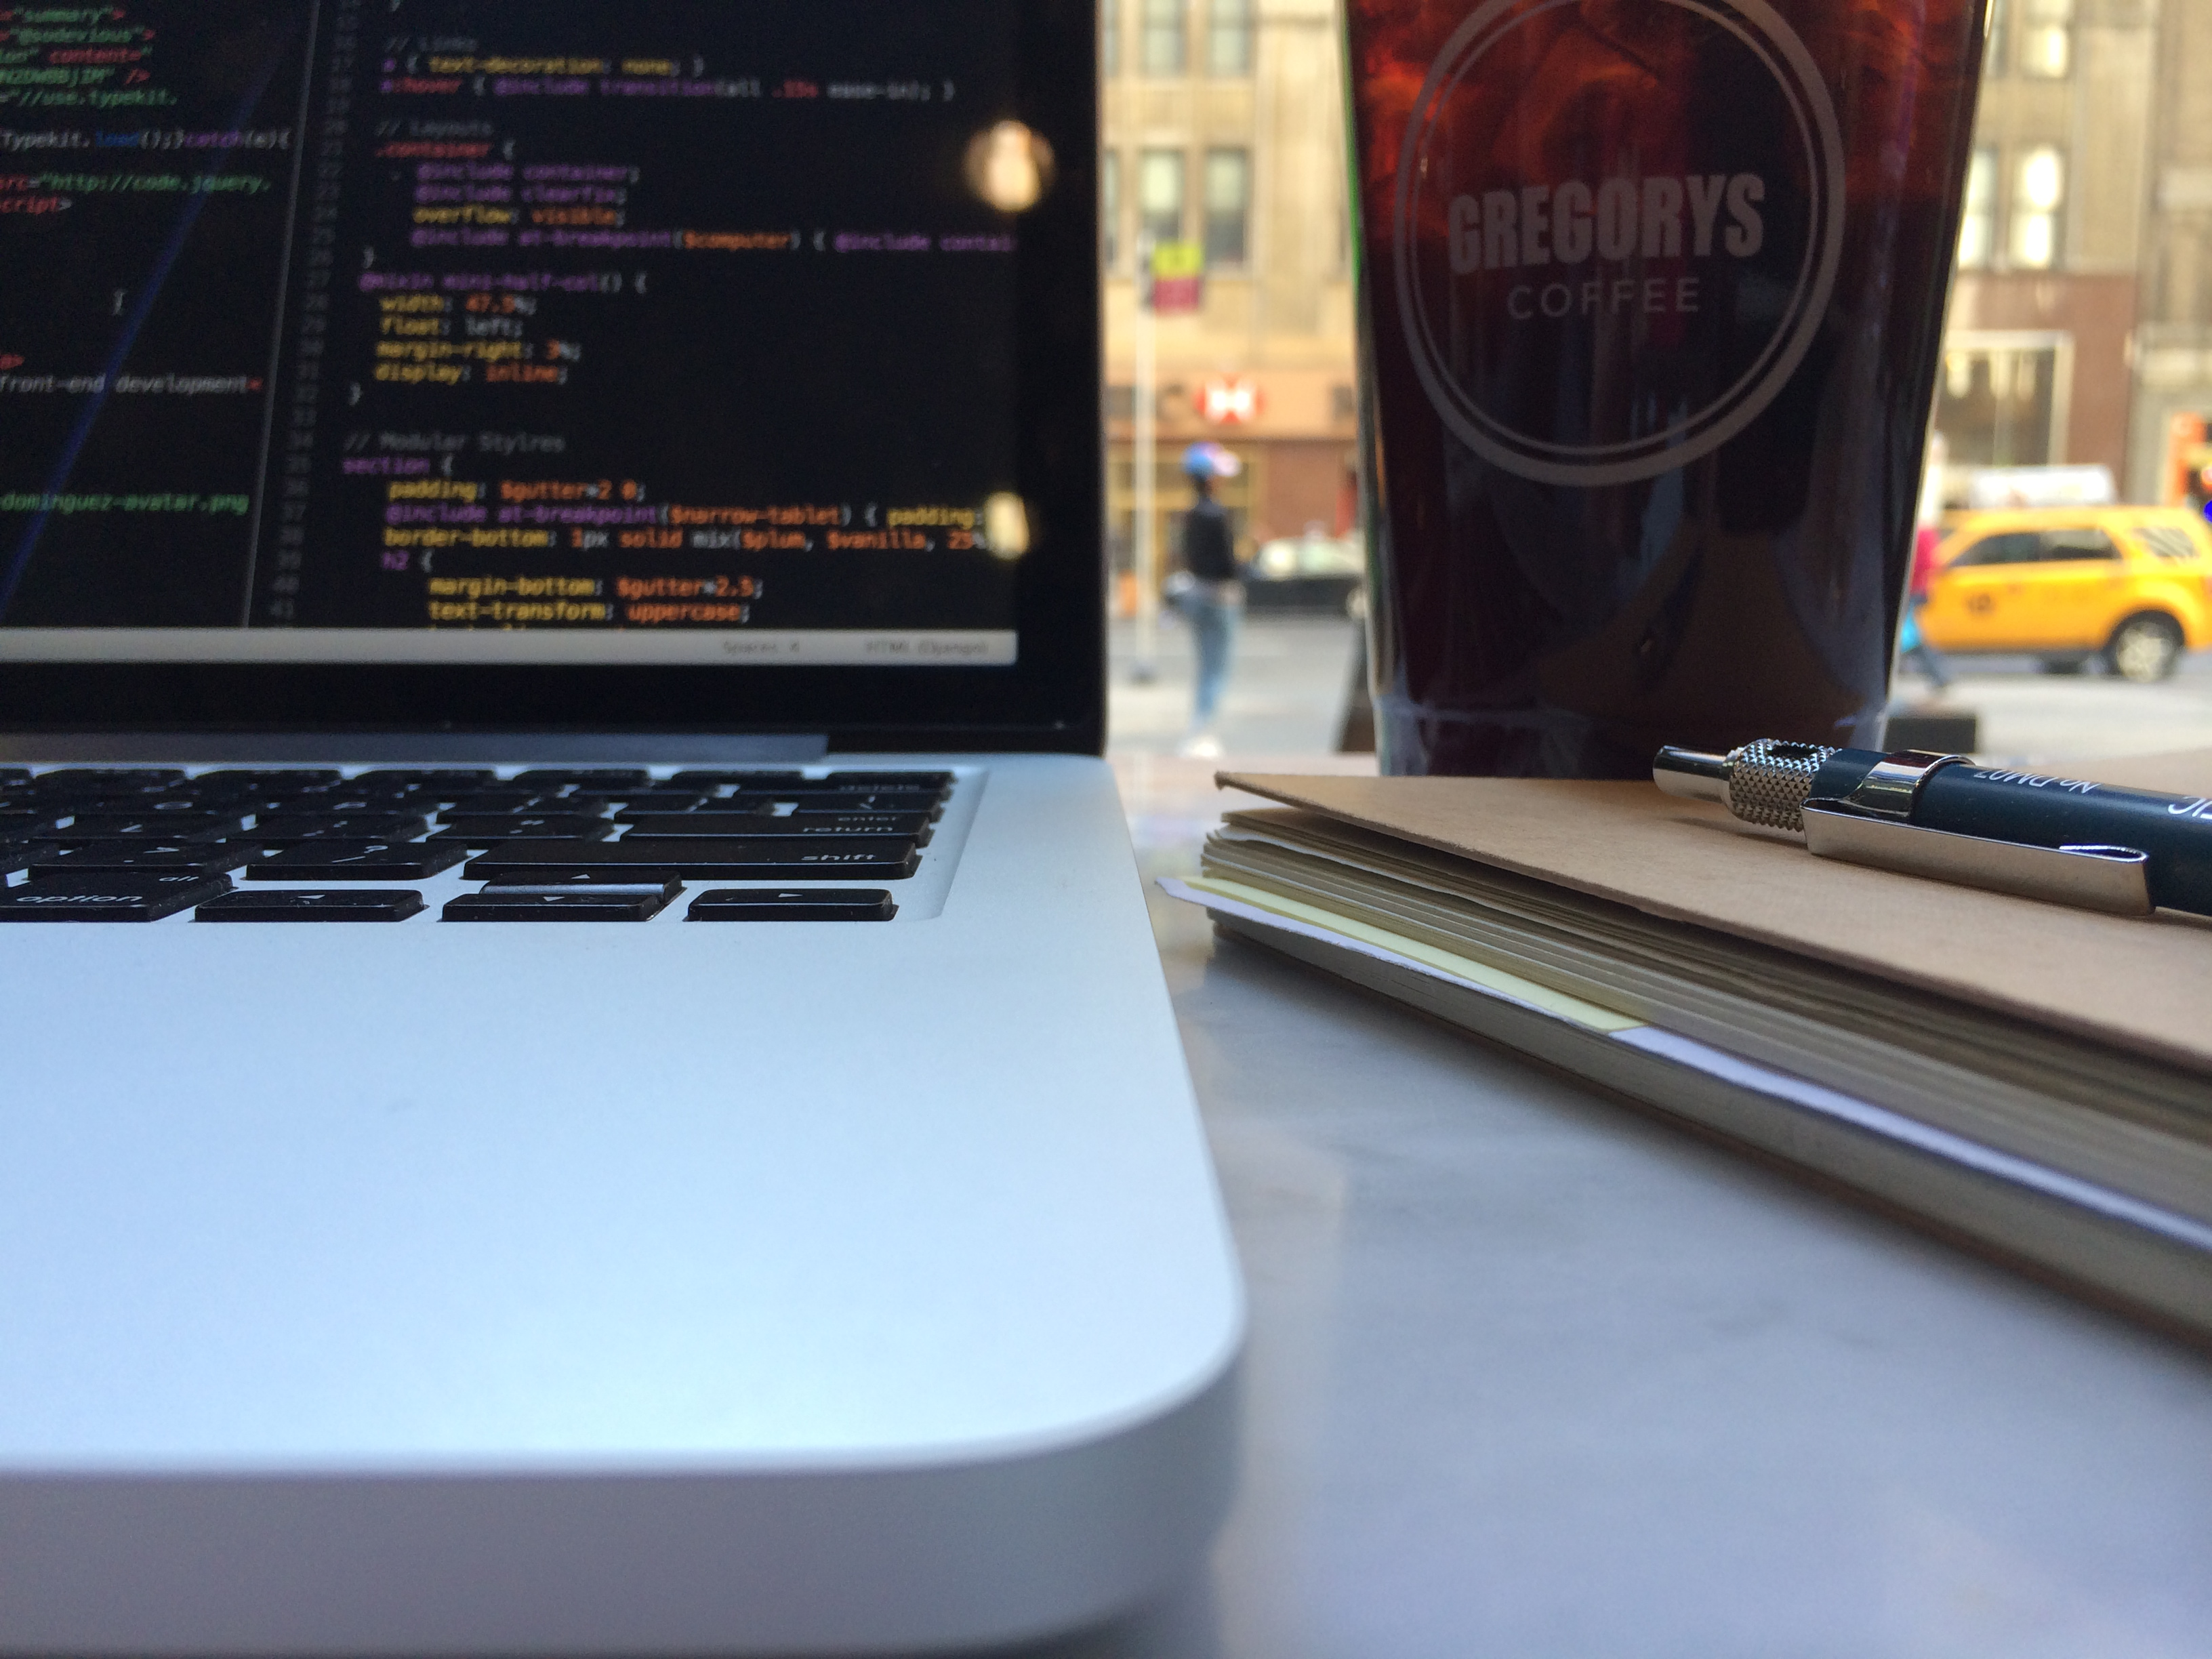 Remote Working from Brooklyn: Make The Most of the Coffee Shop